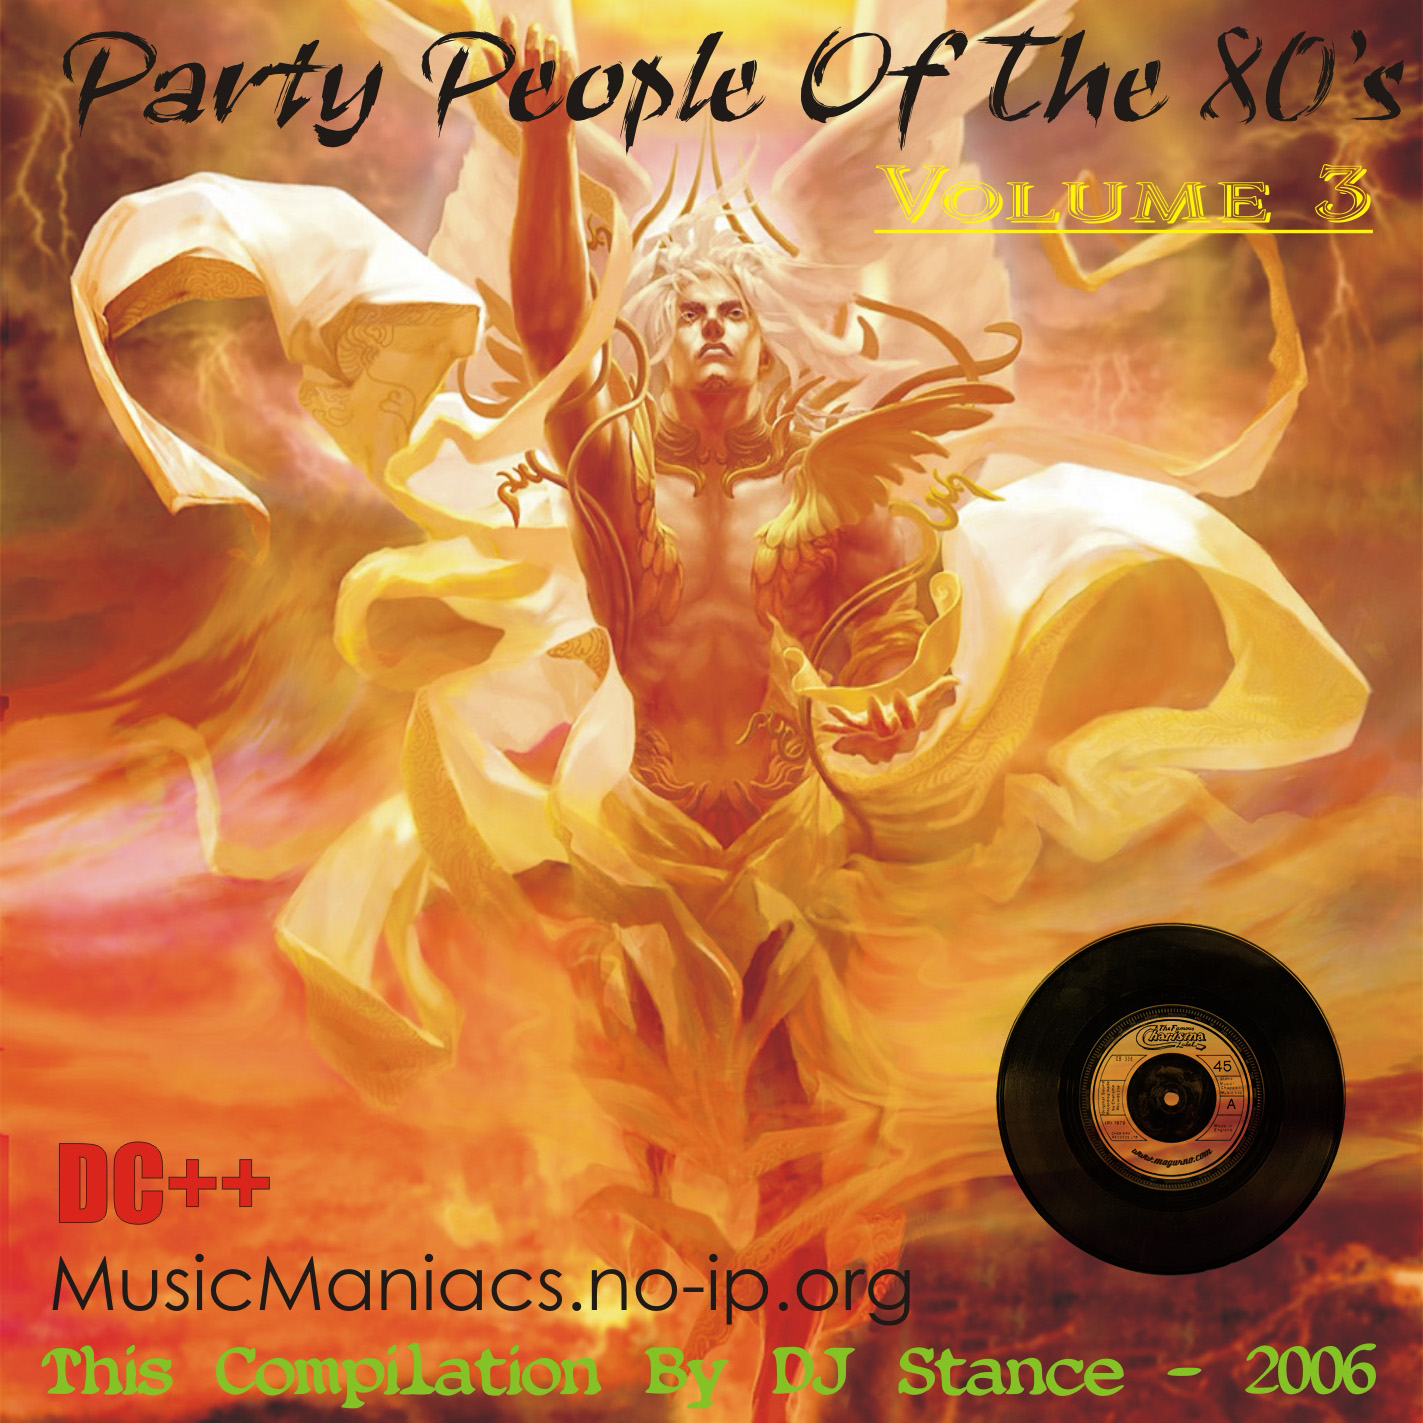 Party People Of The 80's Vol.03